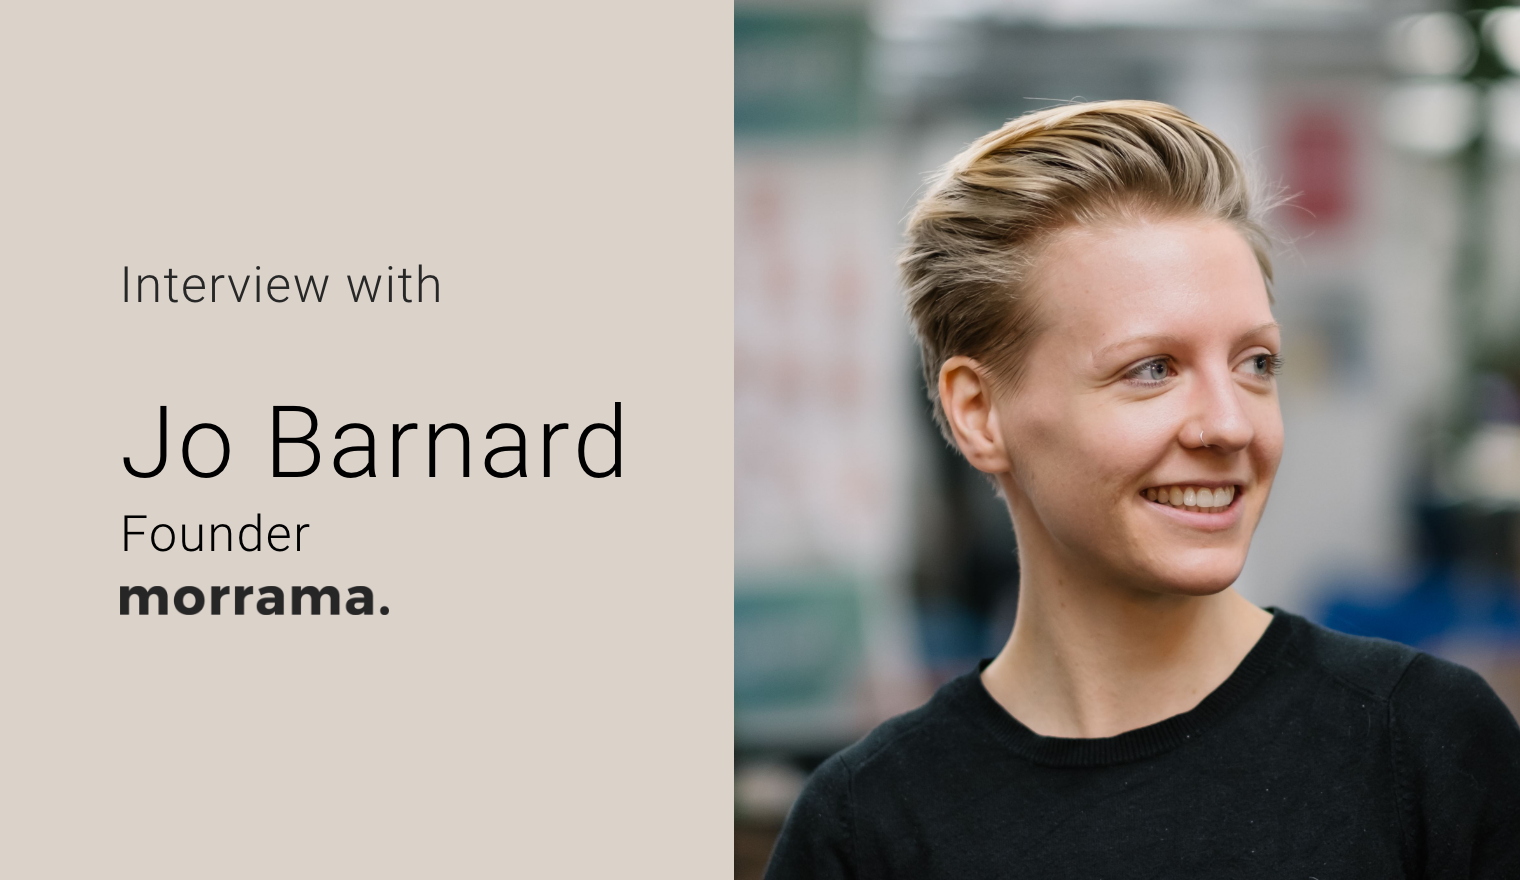 Interview with industrial designer Jo Barnard, Founder of Morrama